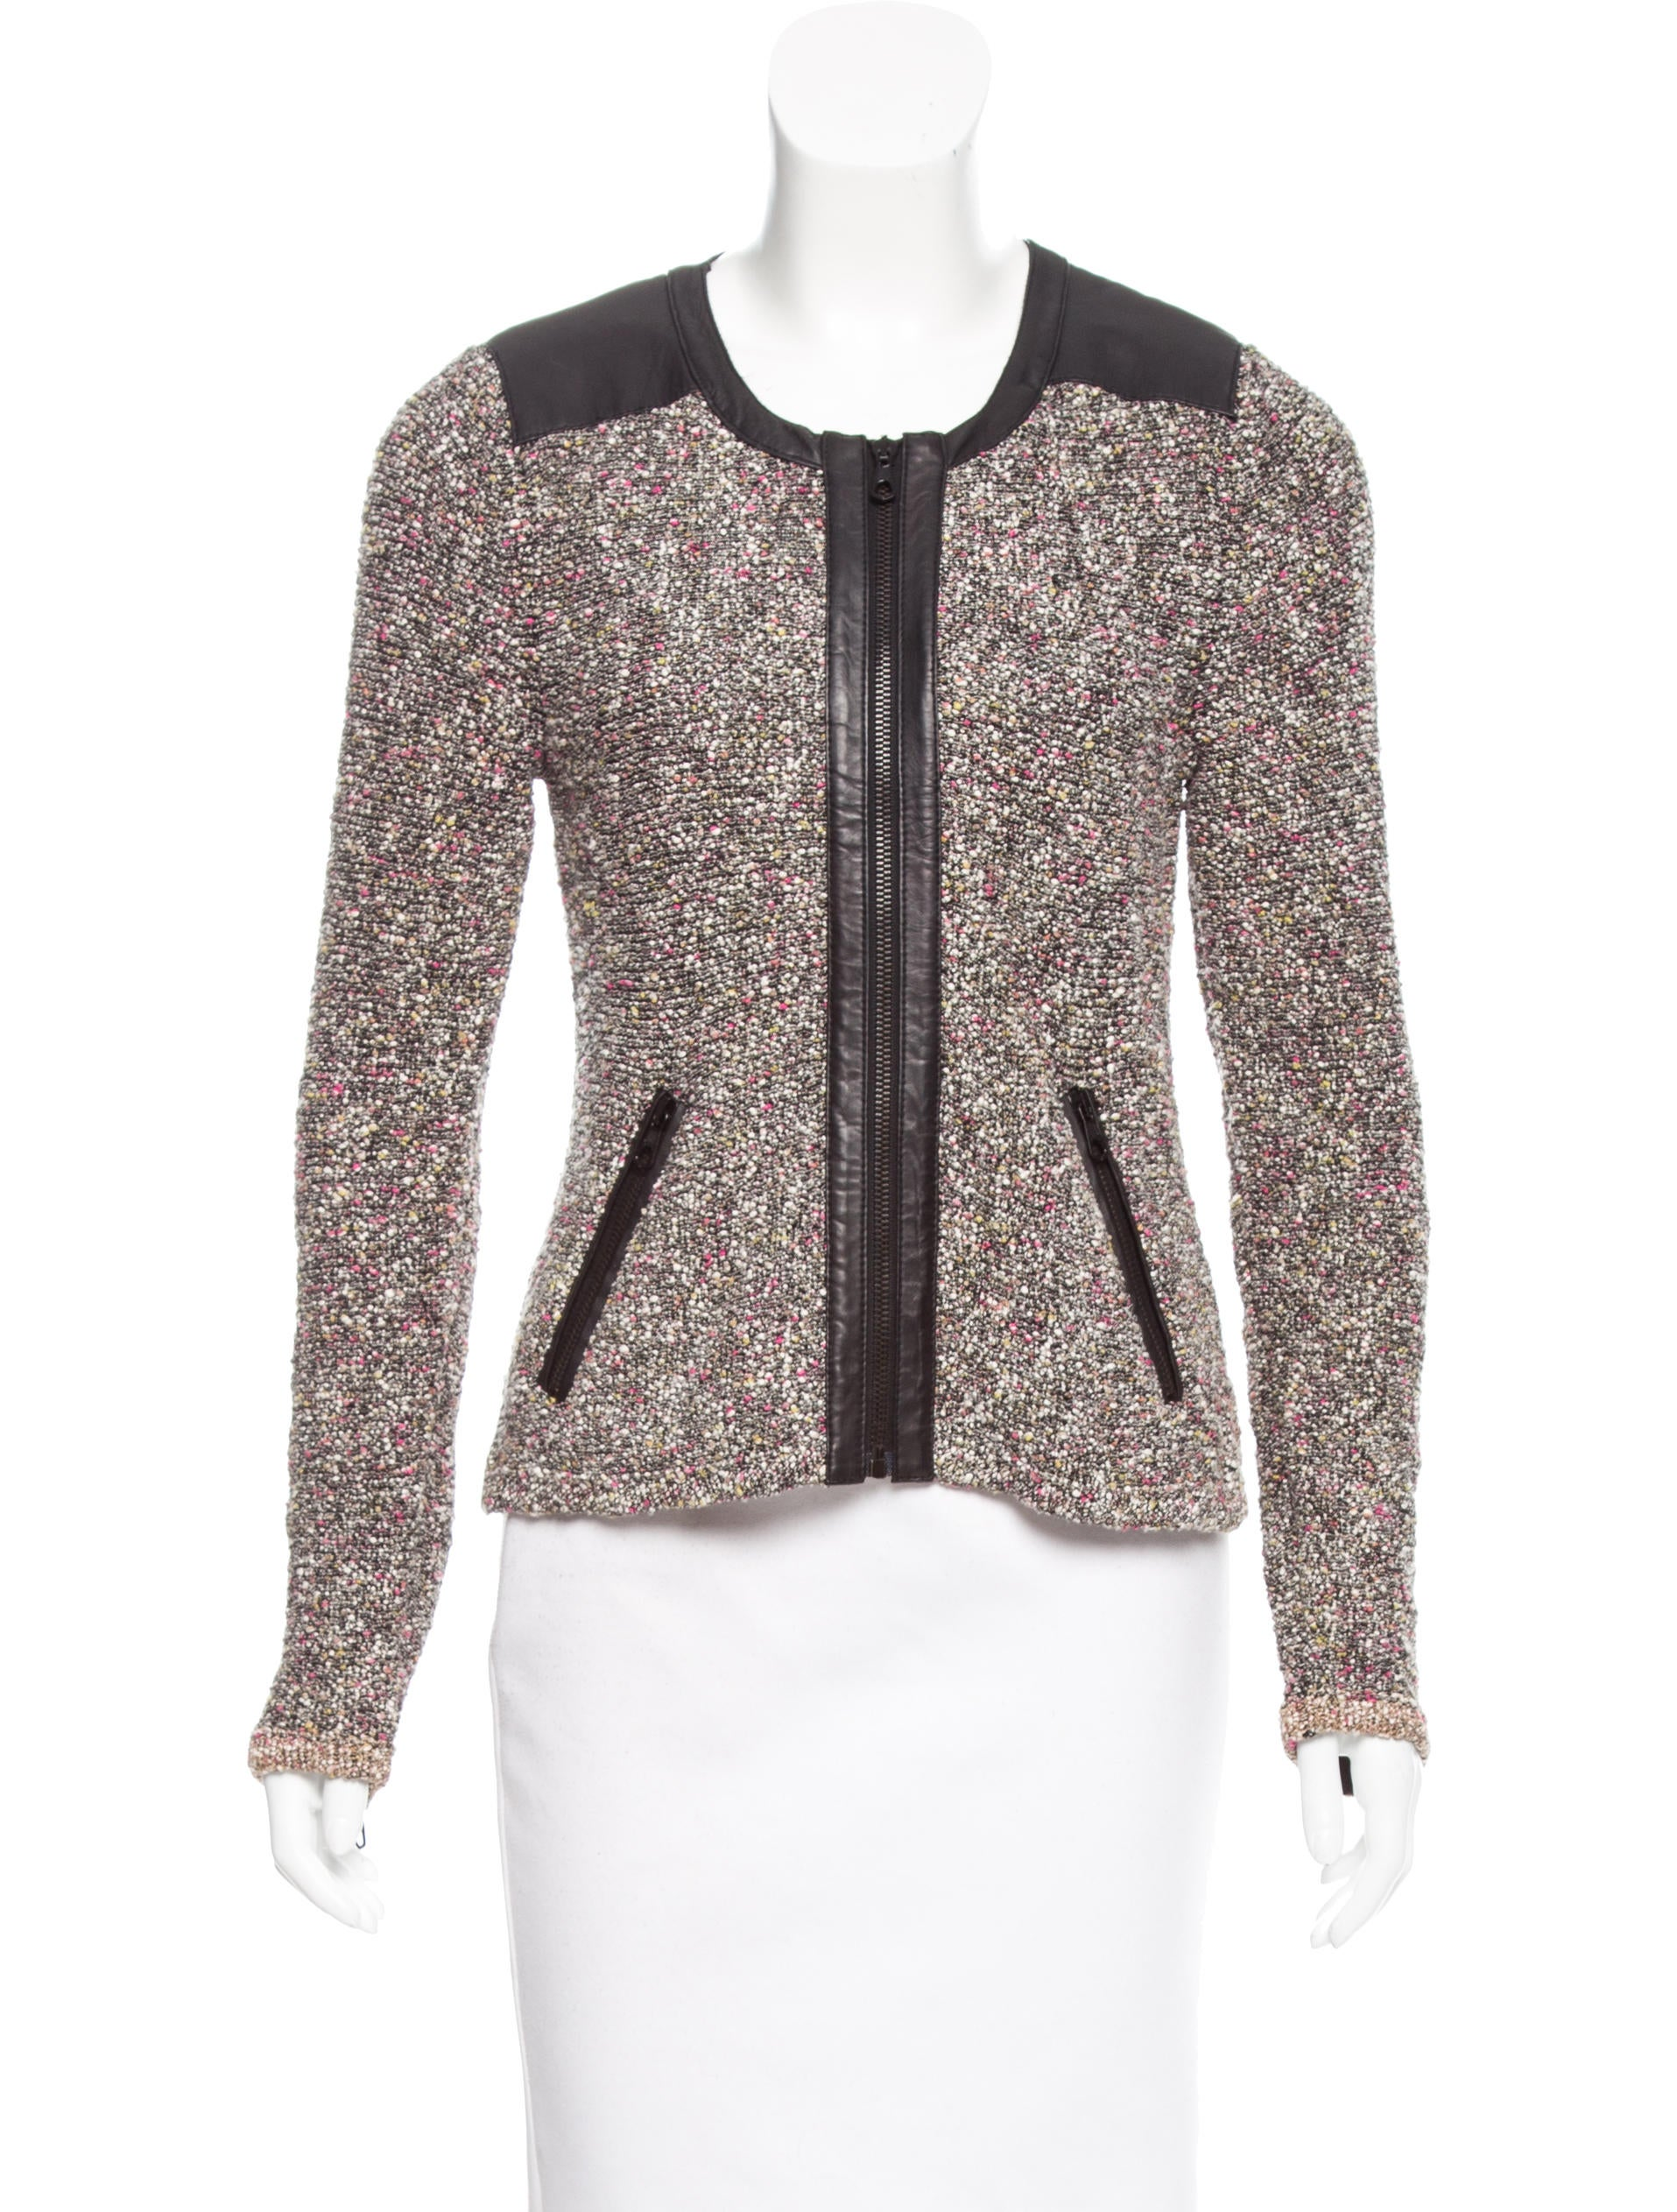 Rag Amp Bone Tweed Leather Accented Jacket Clothing